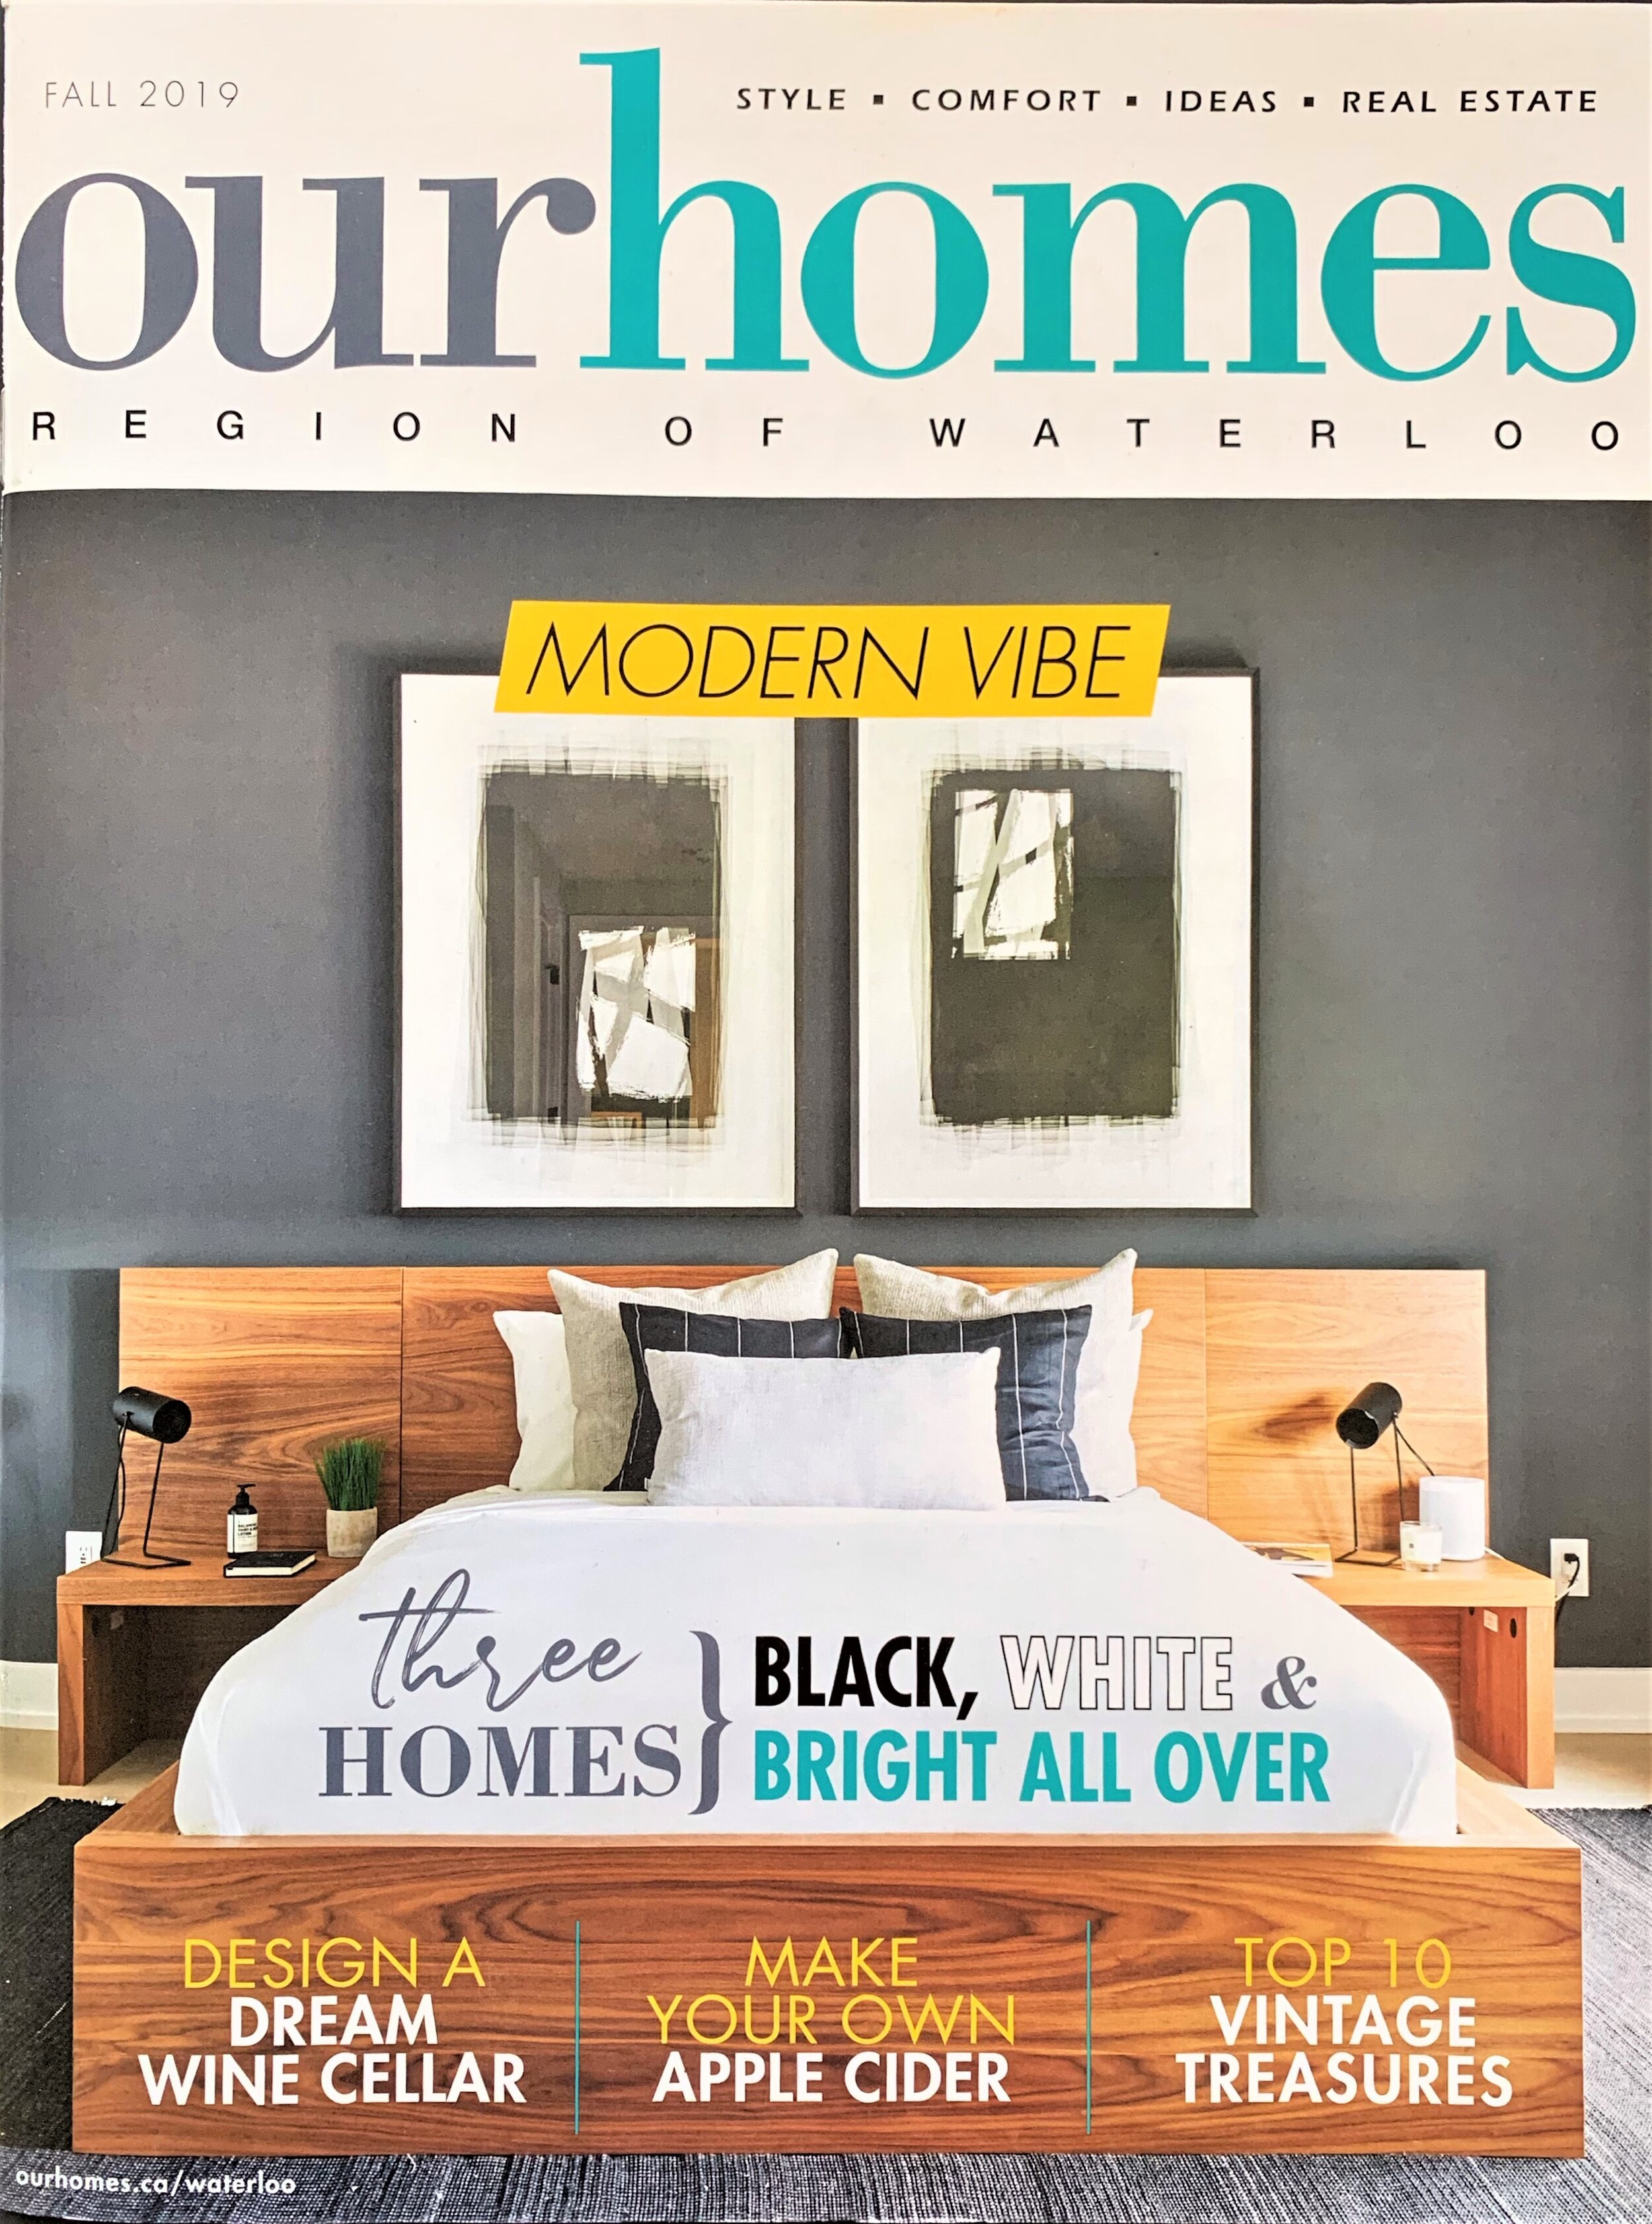 Our Homes, Fall issue, 2019